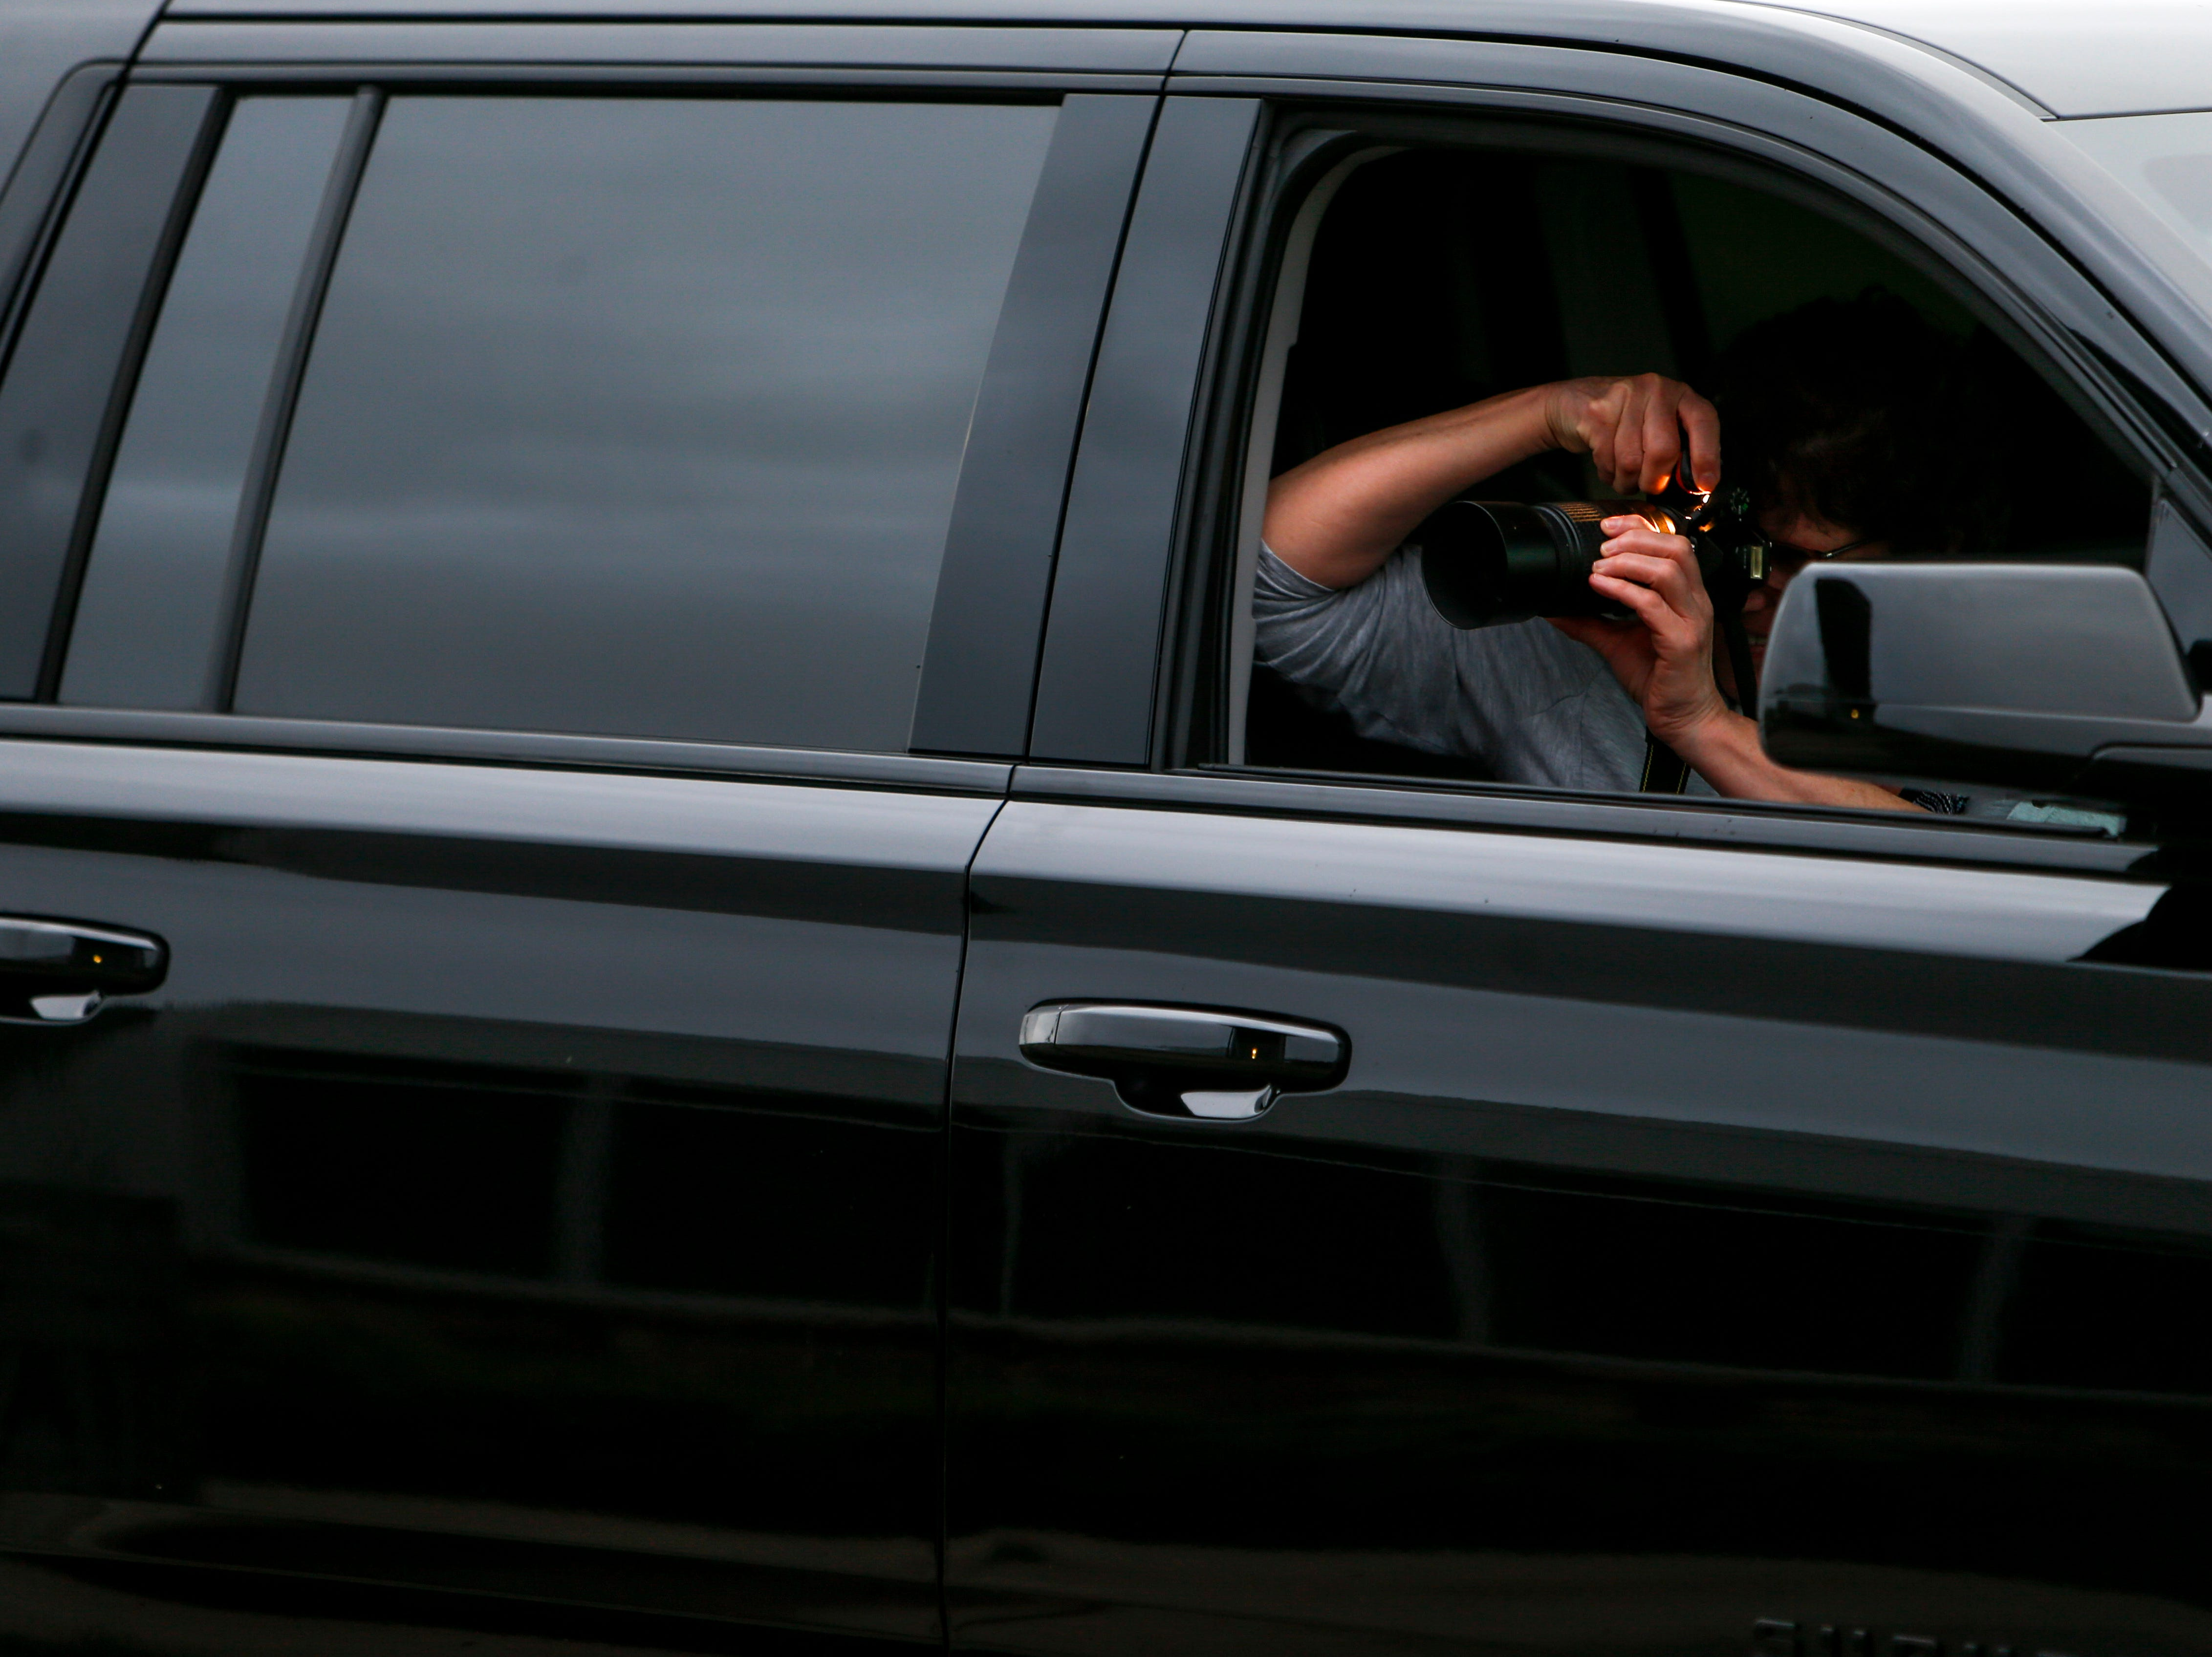 A parent peers out the window of their car to snap photos before hundreds of seniors from Montgomery County Central High School celebrated their senior prom during a break from the weather in an otherwise rainy day at Wilma Rudolph Event Center in Clarksville, Tenn., on Saturday, May 11, 2019.